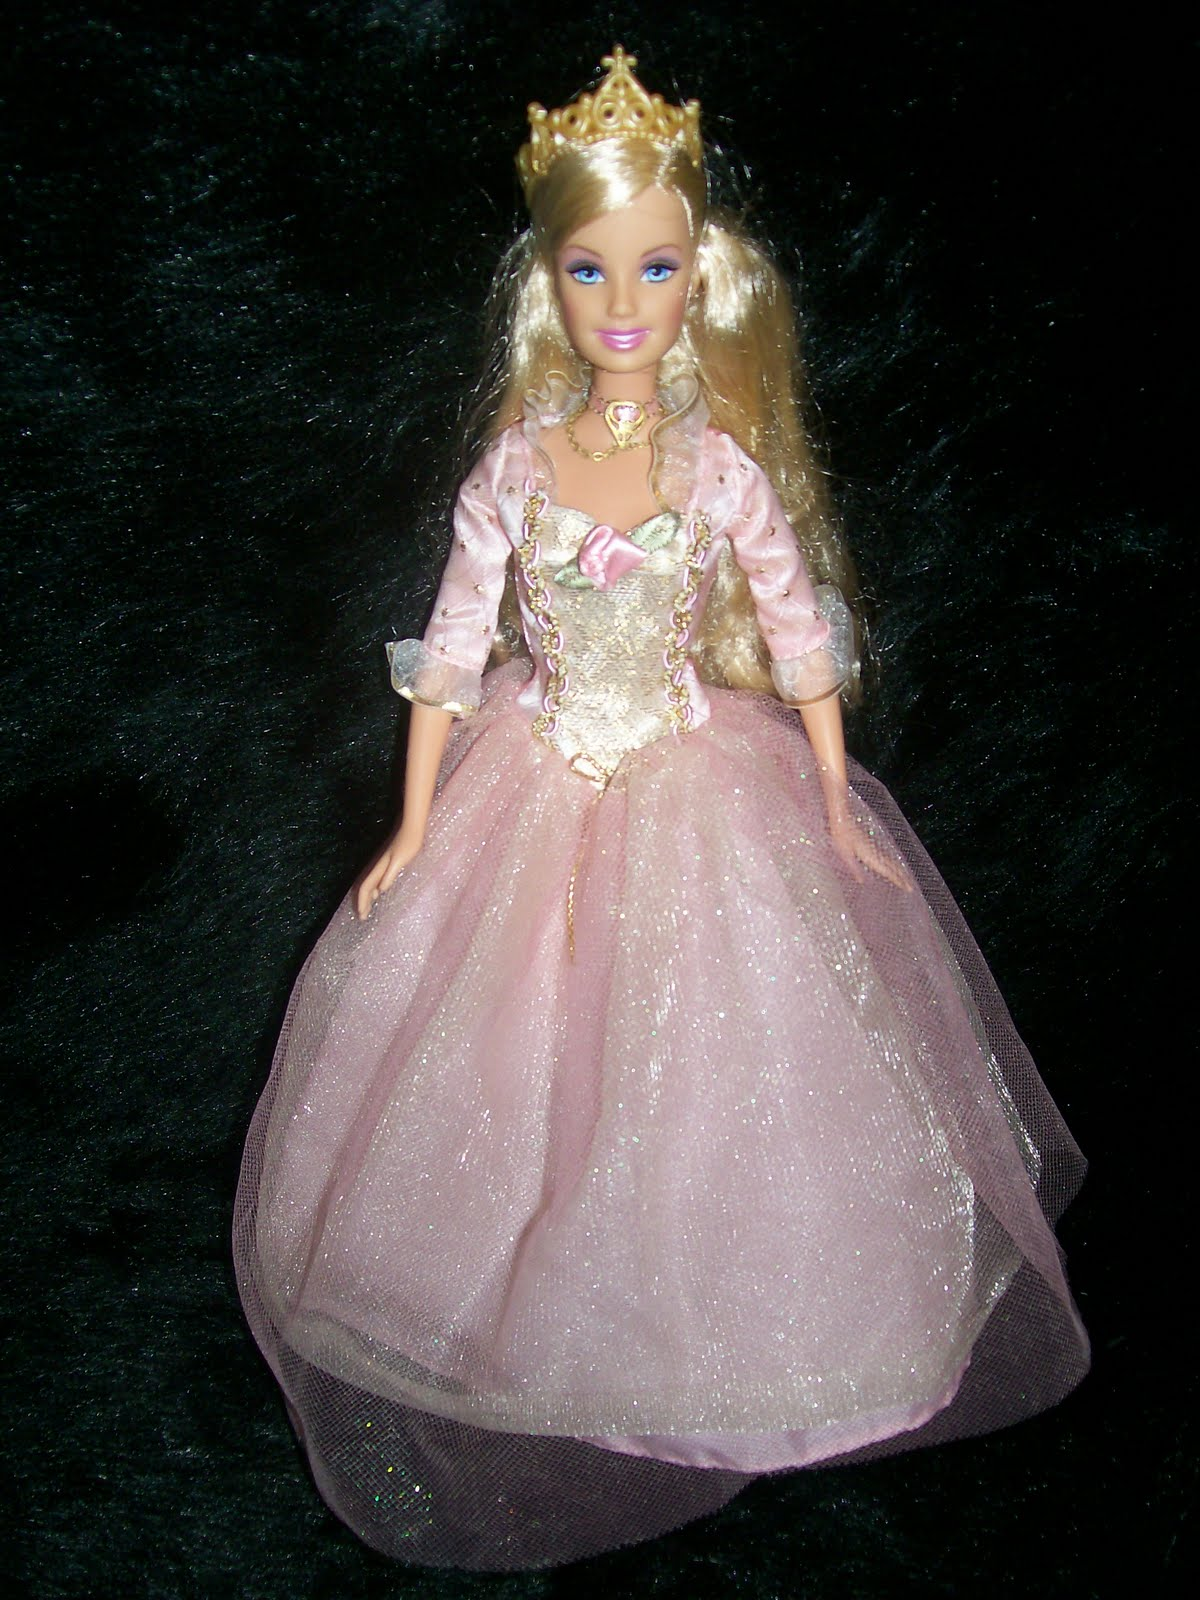 Thrift Store Dolls: May 2010